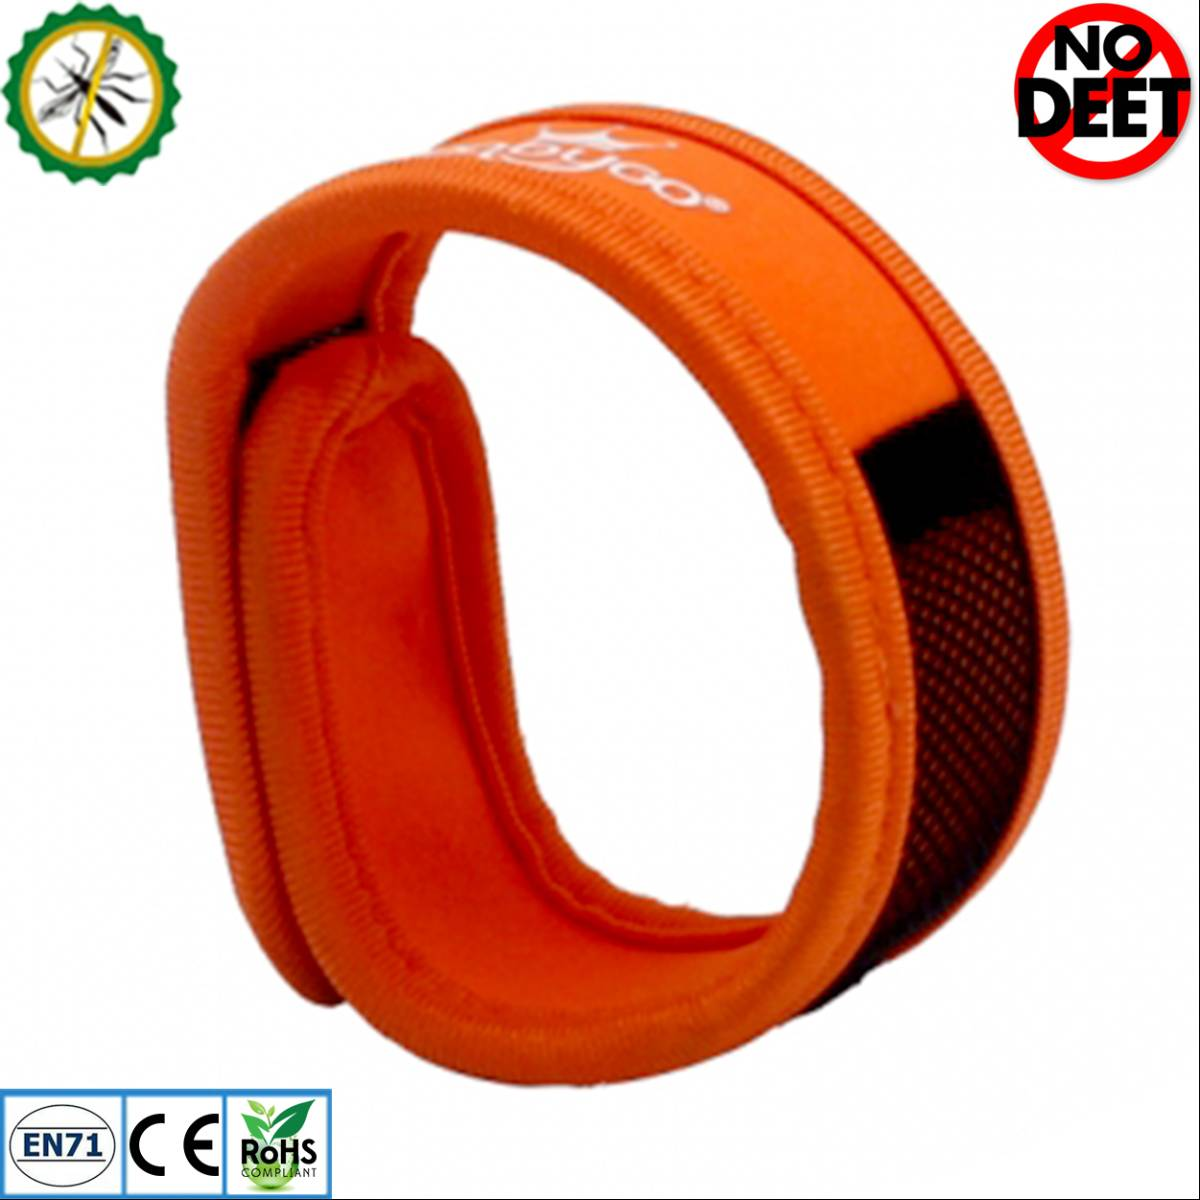 Babygo Neoprene Mosquito Repellent Wristband Orange (gelang Anti Nyamuk)0